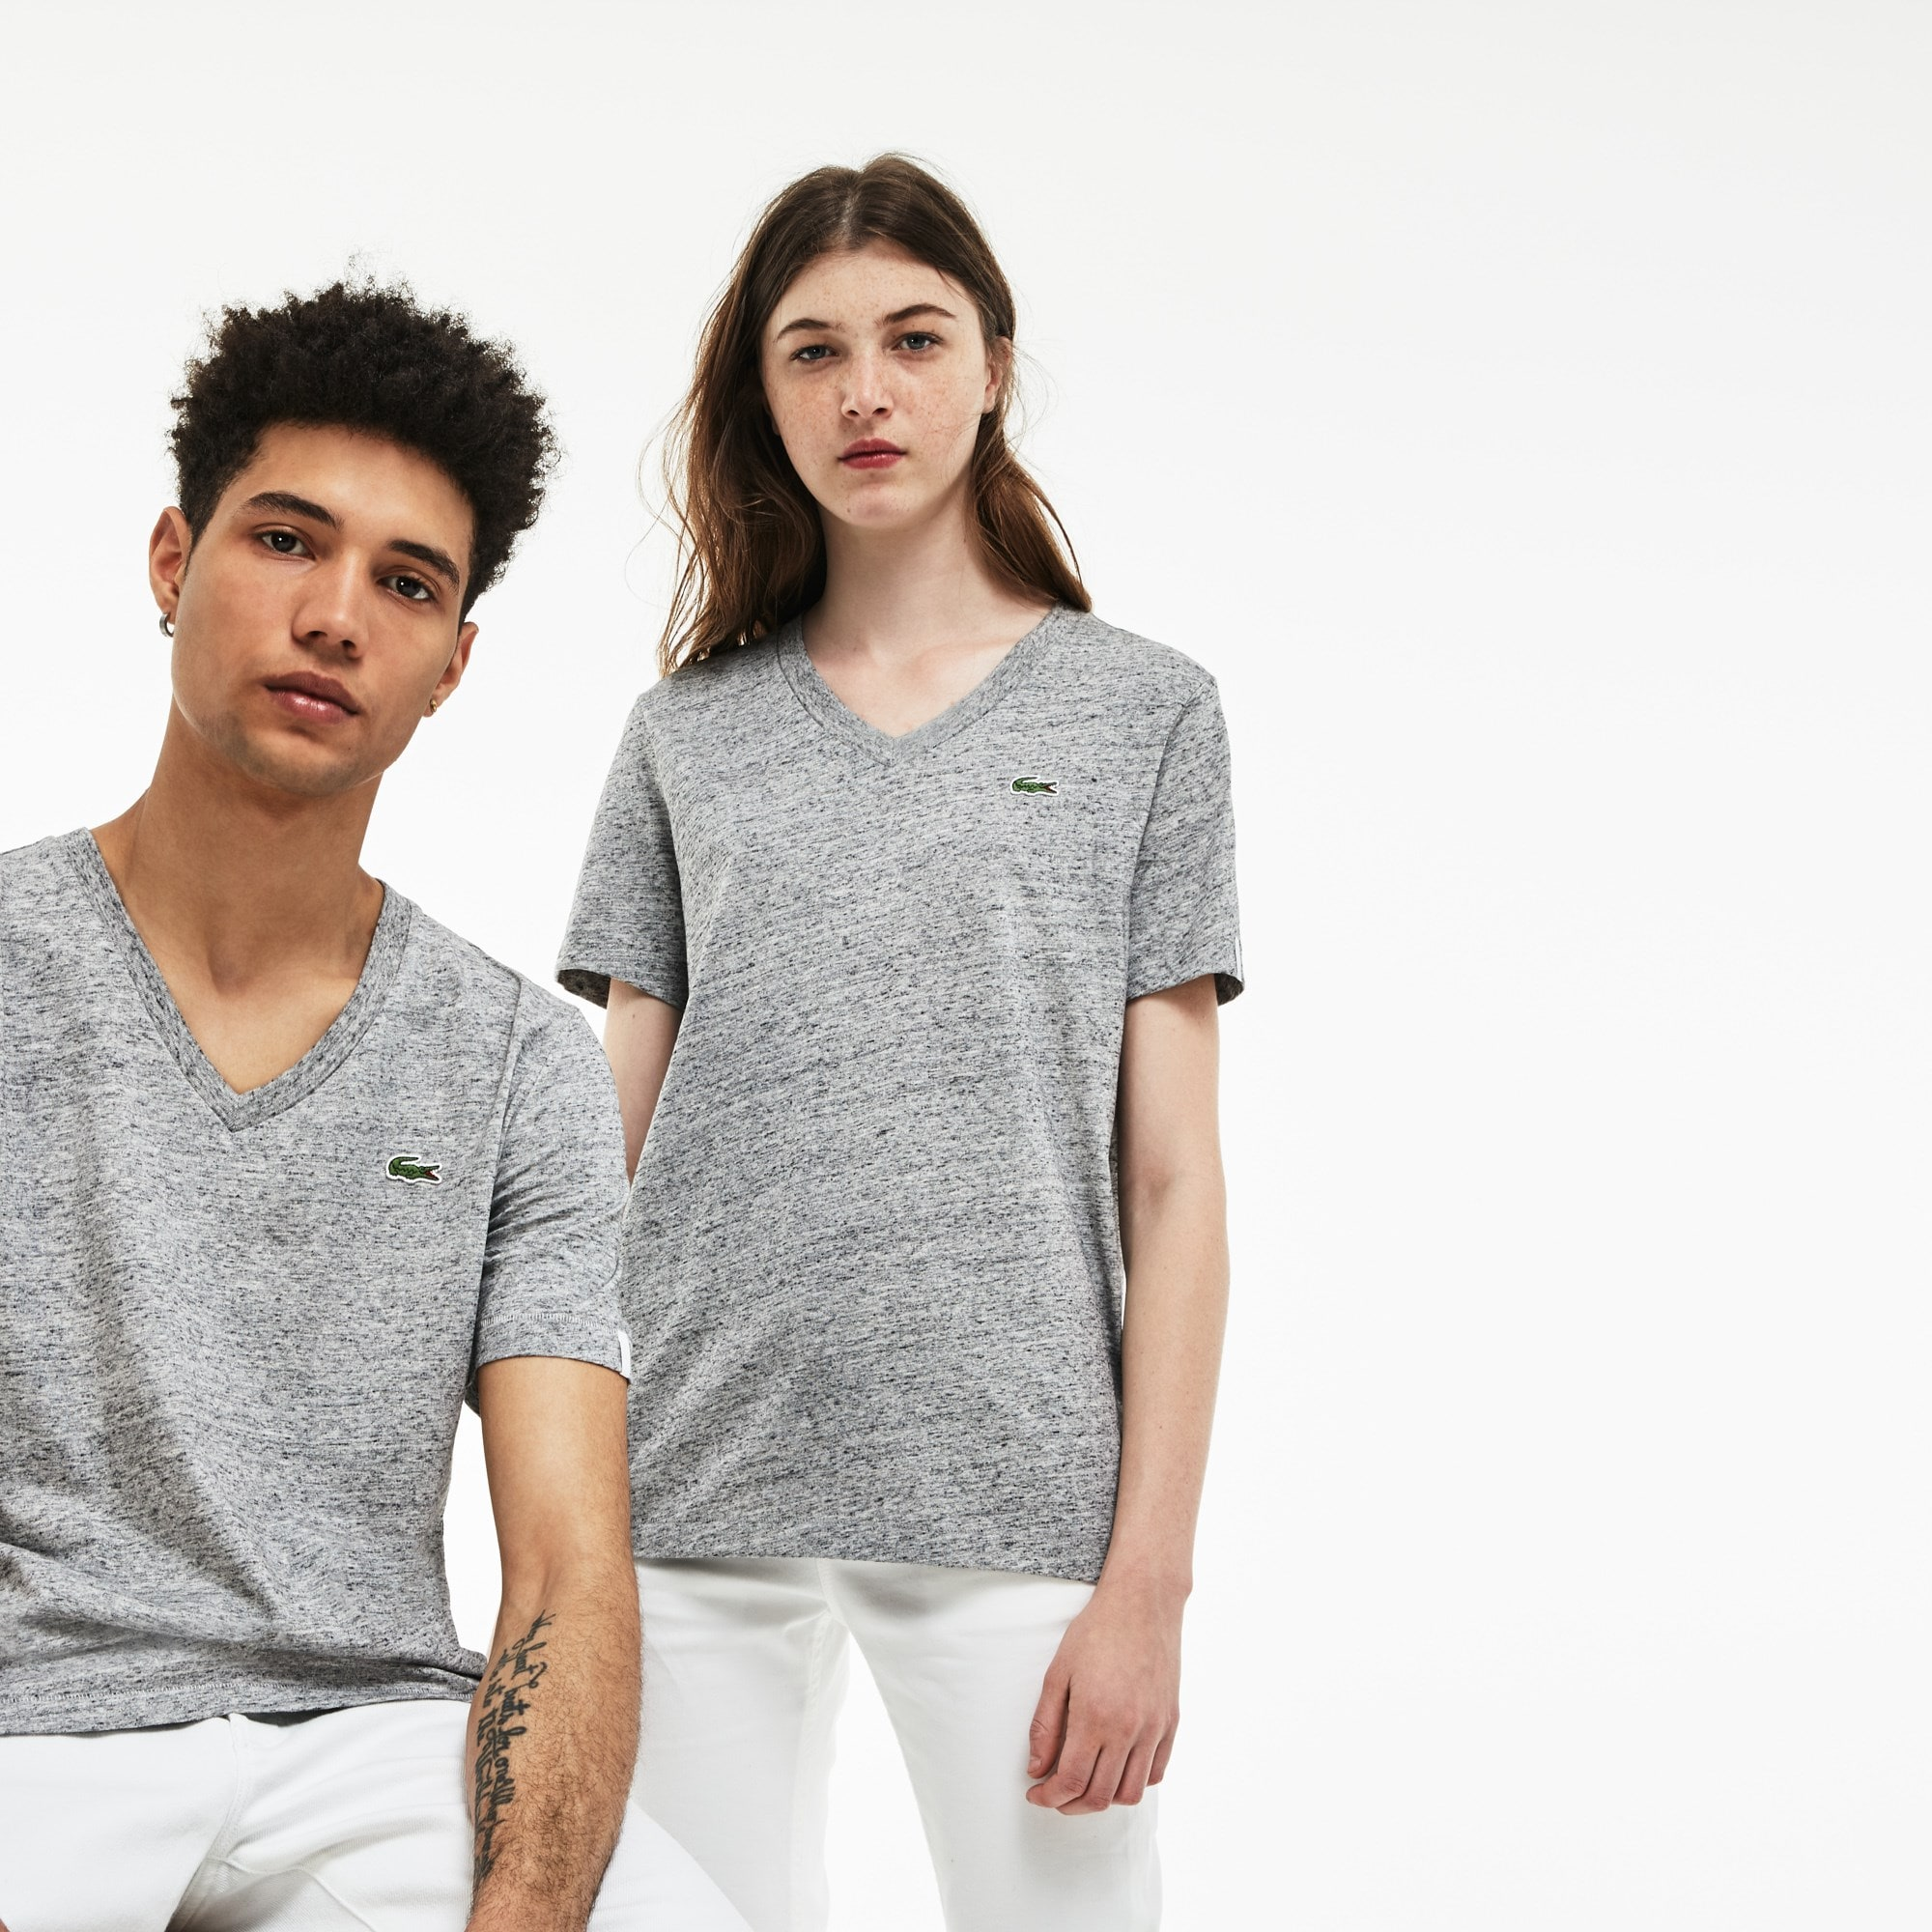 LiveClothingFootwearamp; Lacoste Fragrances Lacoste Collection Lacoste Fragrances Collection LiveClothingFootwearamp; yv8nwOmN0